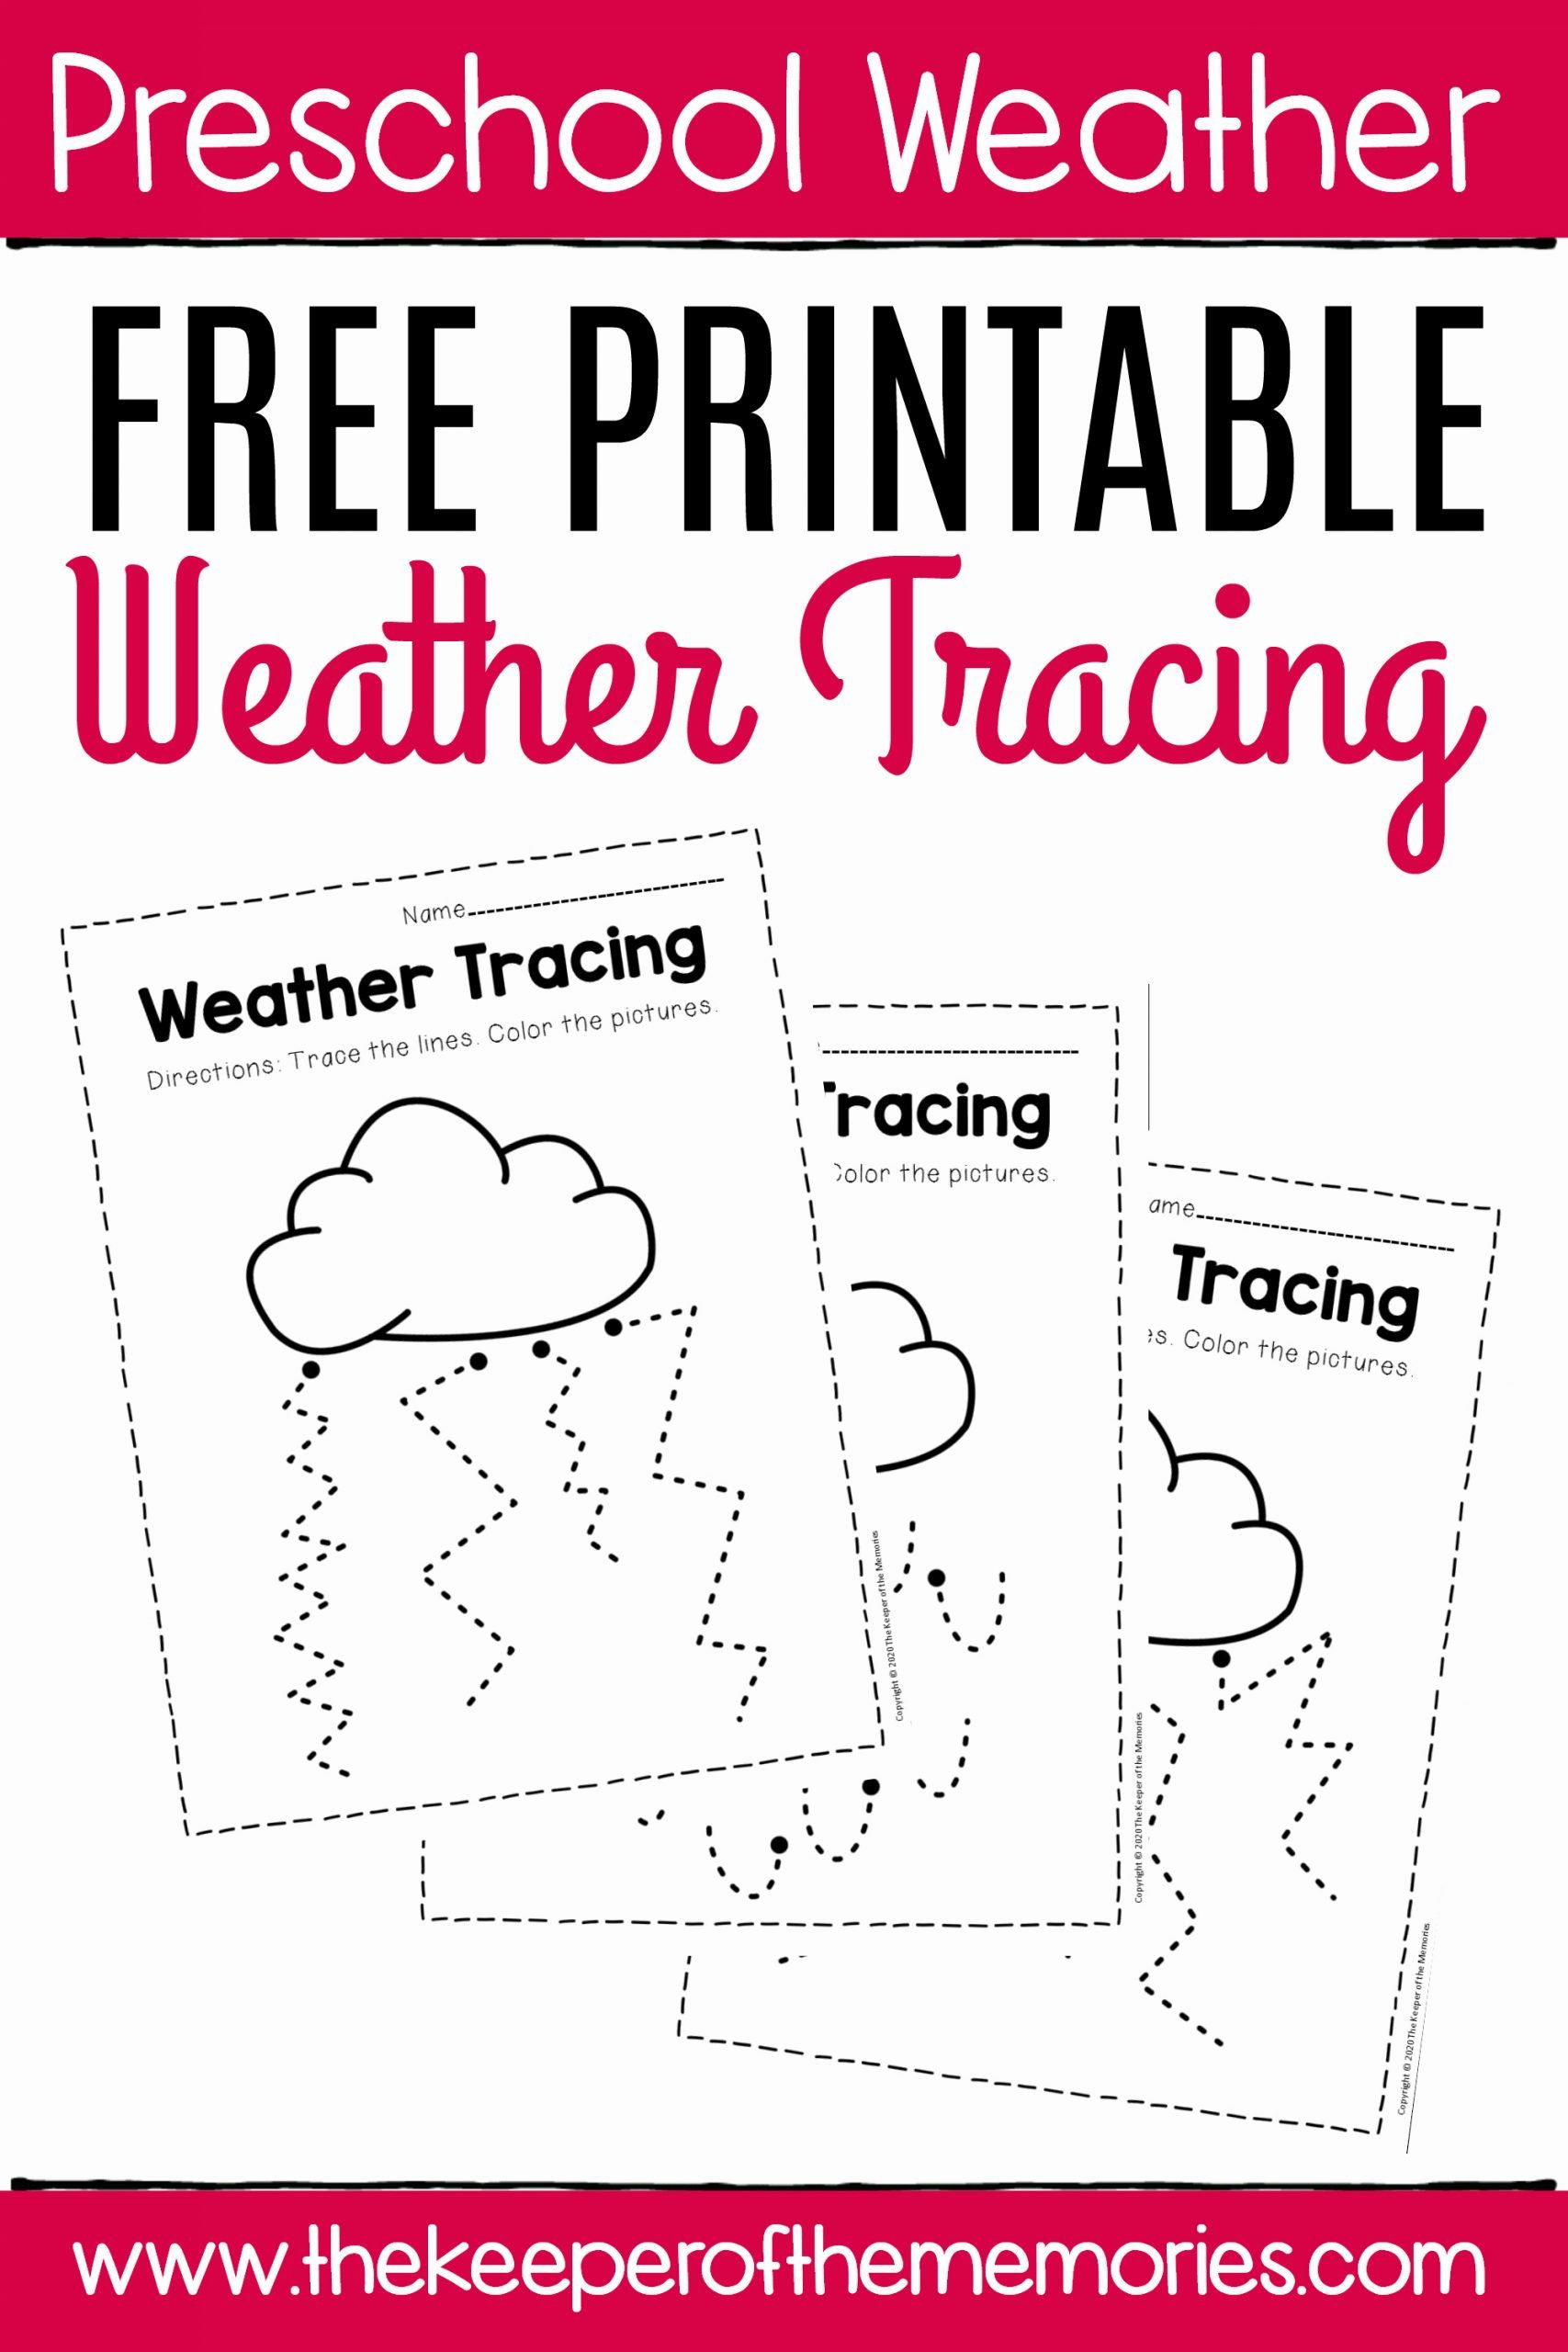 Free Printable Weather Worksheets for Preschoolers Ideas Free Printable Storm Clouds Tracing Weather Preschool